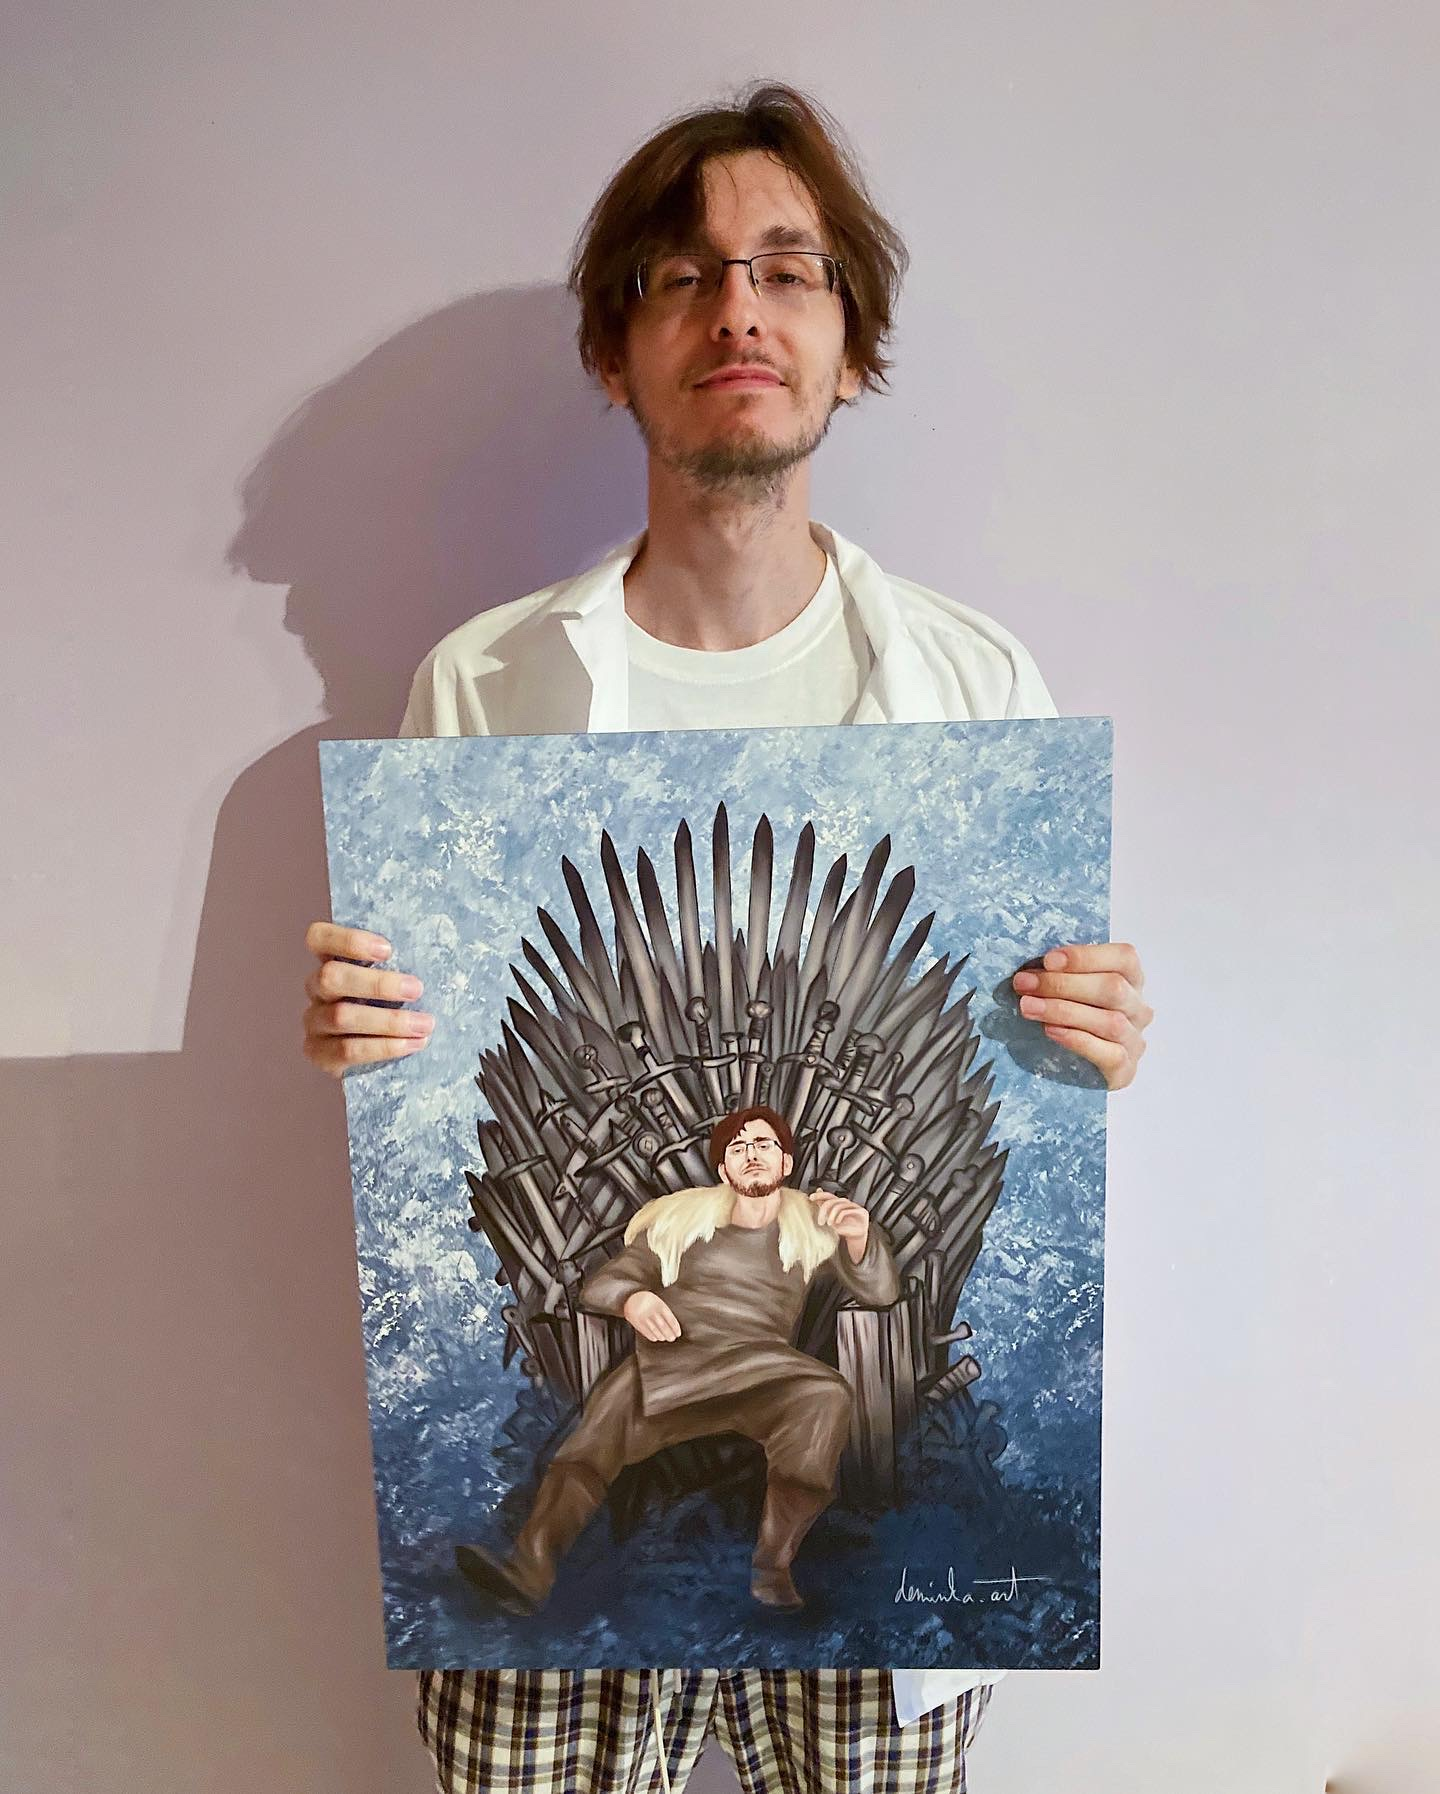 Birthday gift for Game of Thrones fan